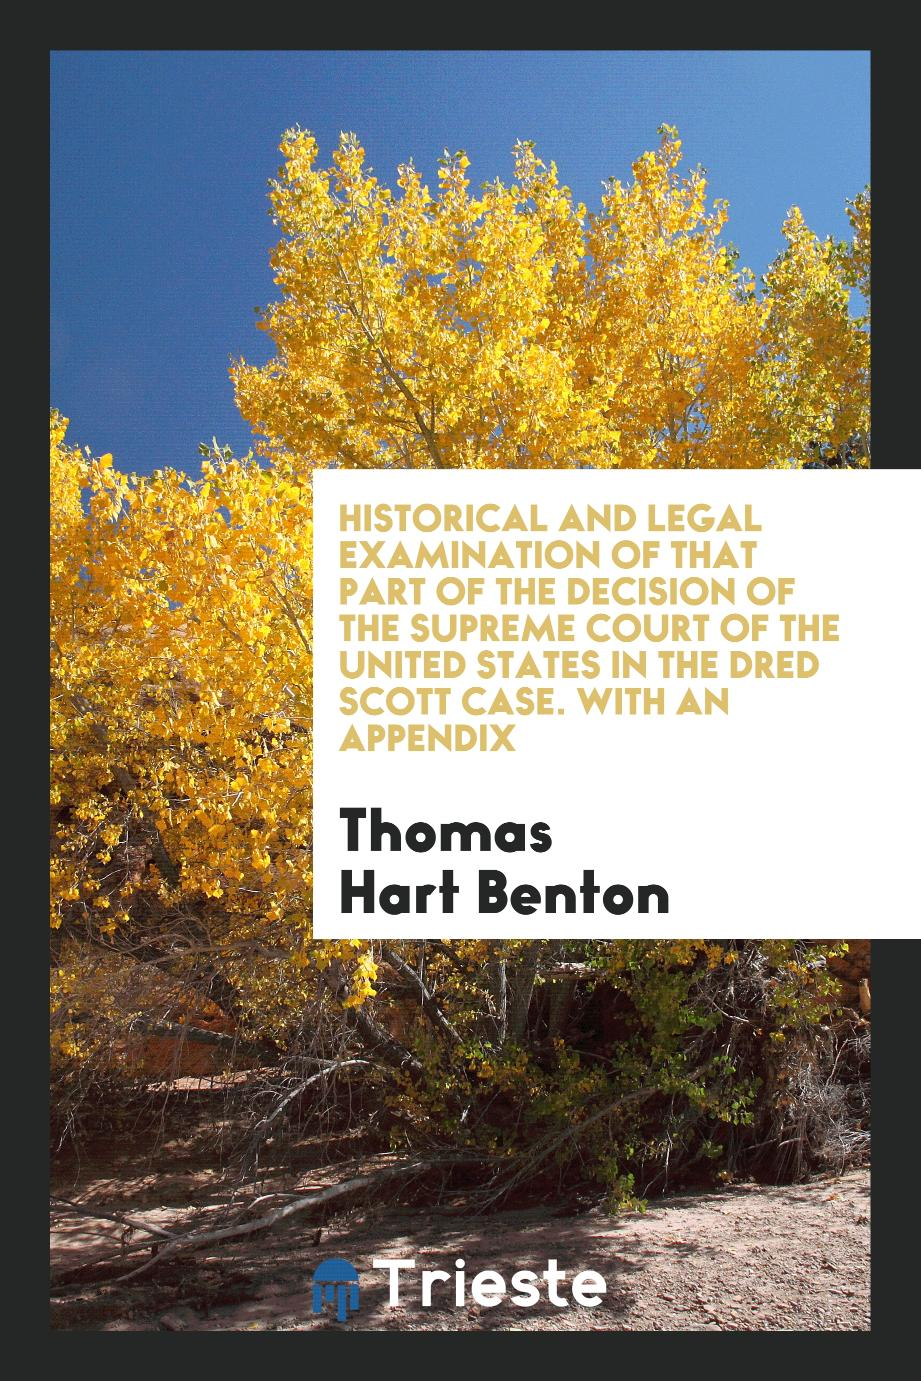 Historical and Legal Examination of That Part of the Decision of the Supreme Court of the United States in the Dred Scott Case. With an Appendix